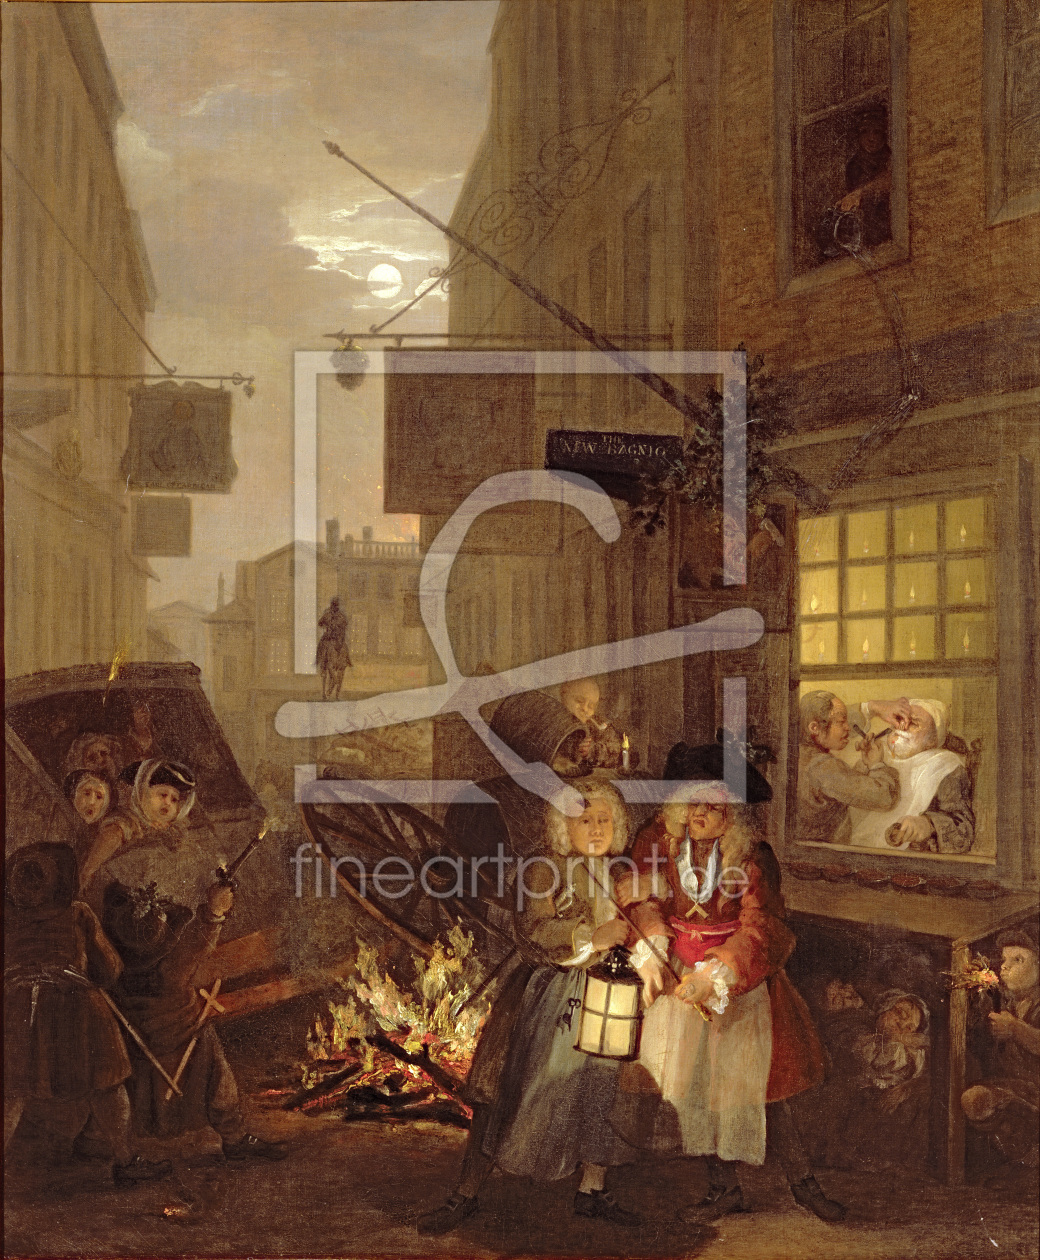 Bild-Nr.: 31000650 The Four Times of Day: Night, 1736 erstellt von Hogarth, William